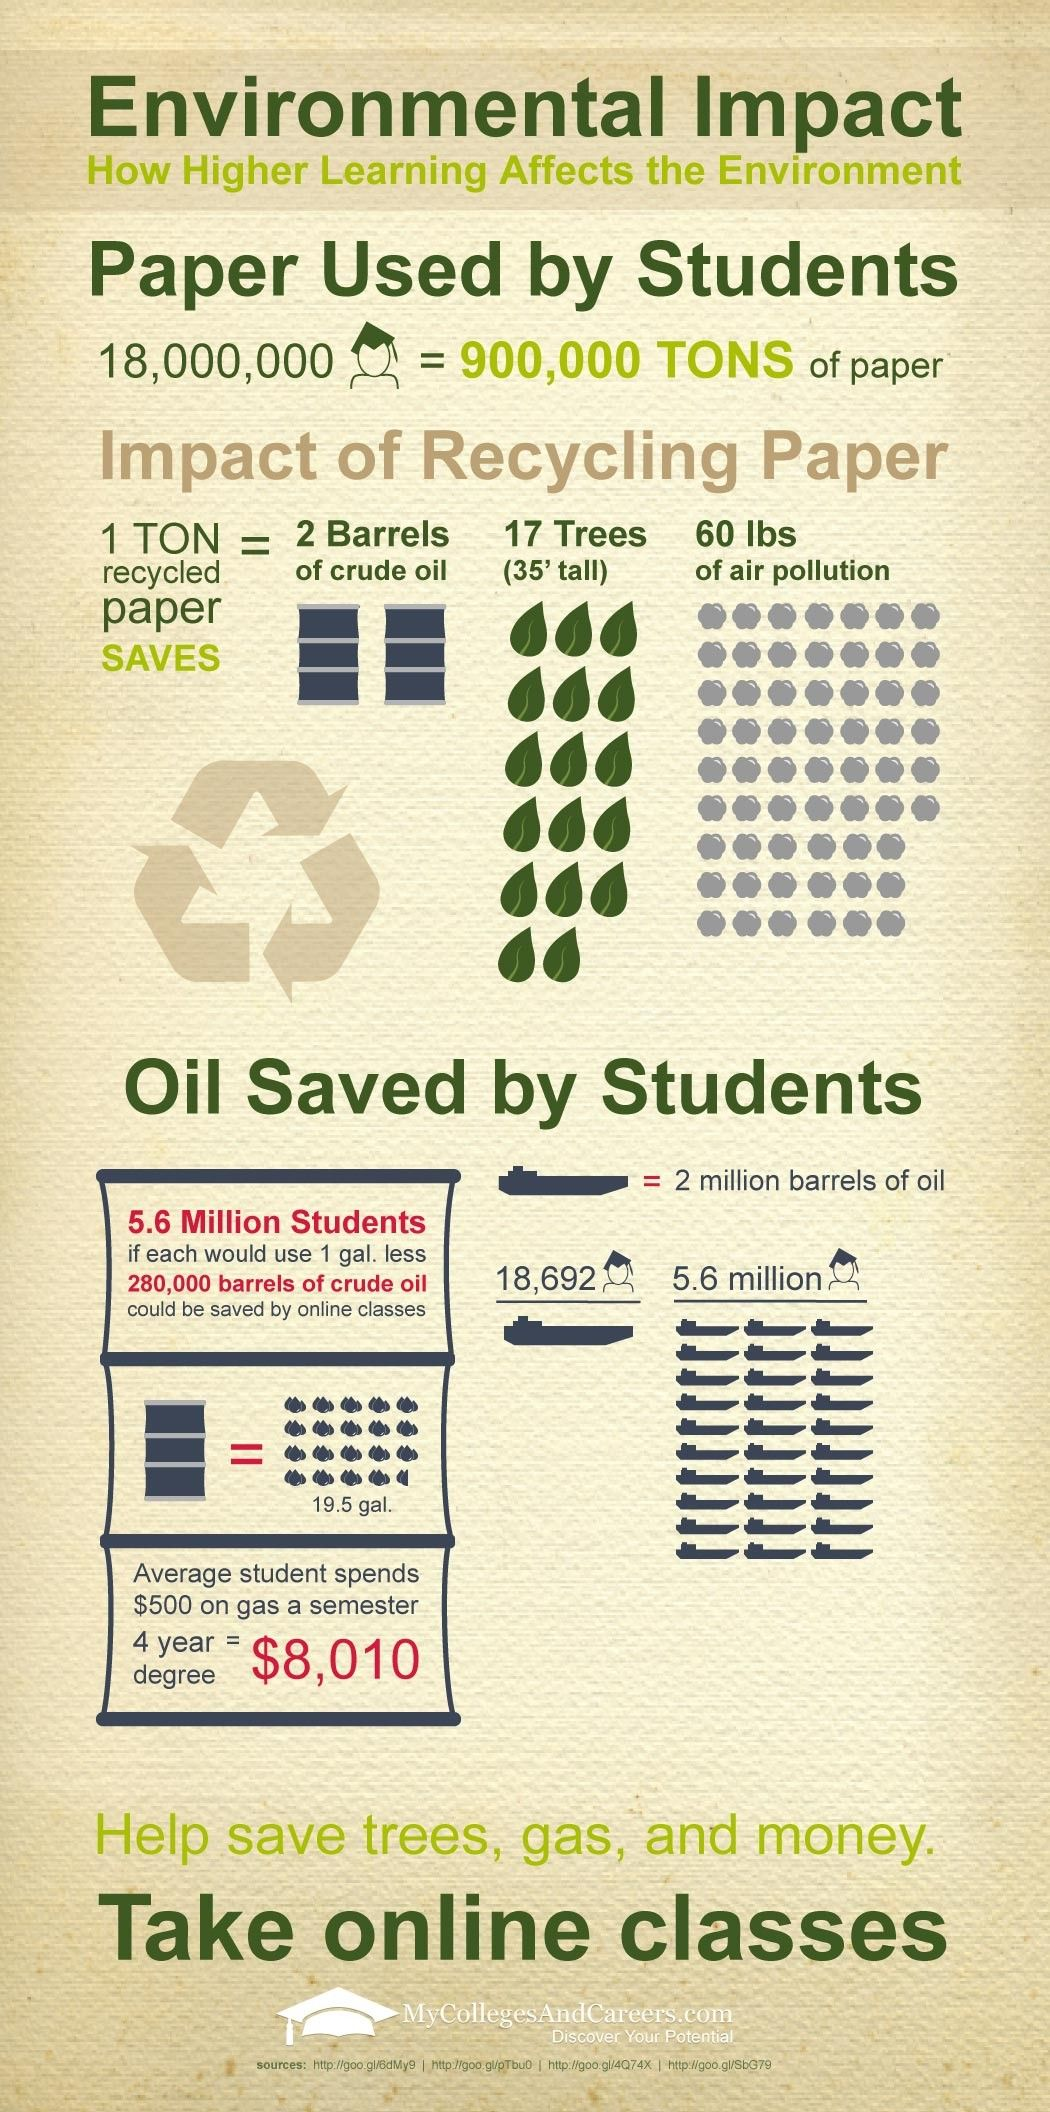 001 This infographic poster portrays environmental impact of